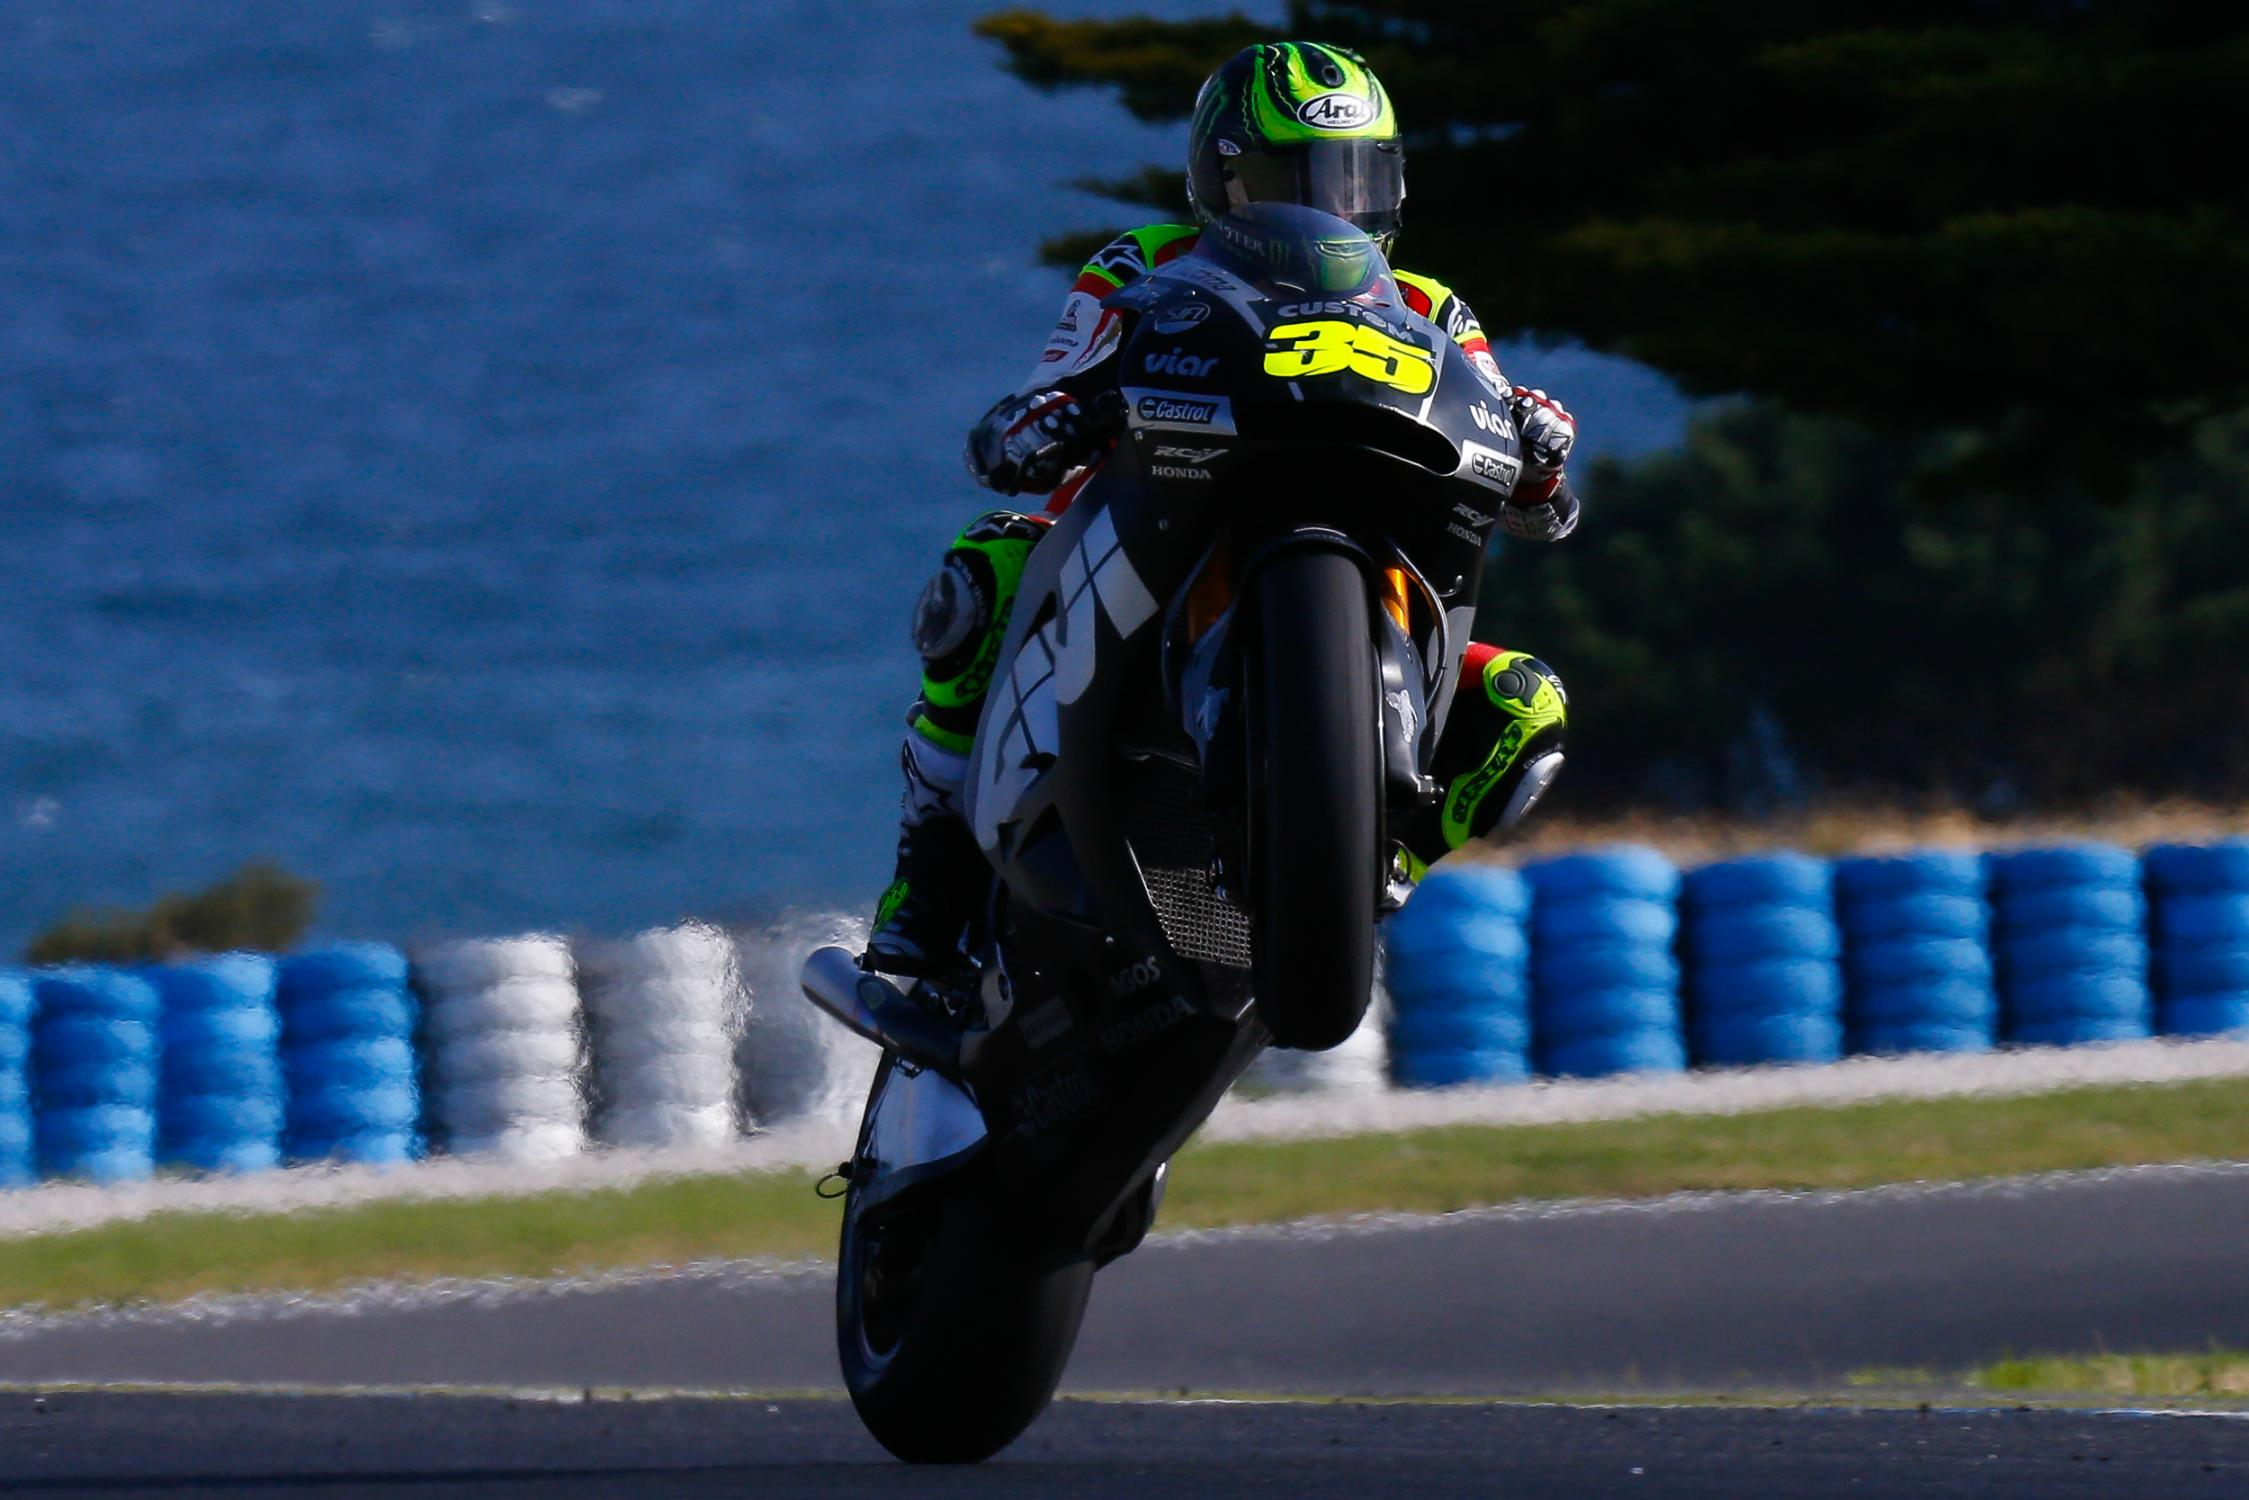 [MotoGP] Test Phillip Island 35-cal-crutchlow-eng-2017-action-australia-motogp-phillip-island-pre-season-test10584_test2017_action.gallery_full_top_fullscreen